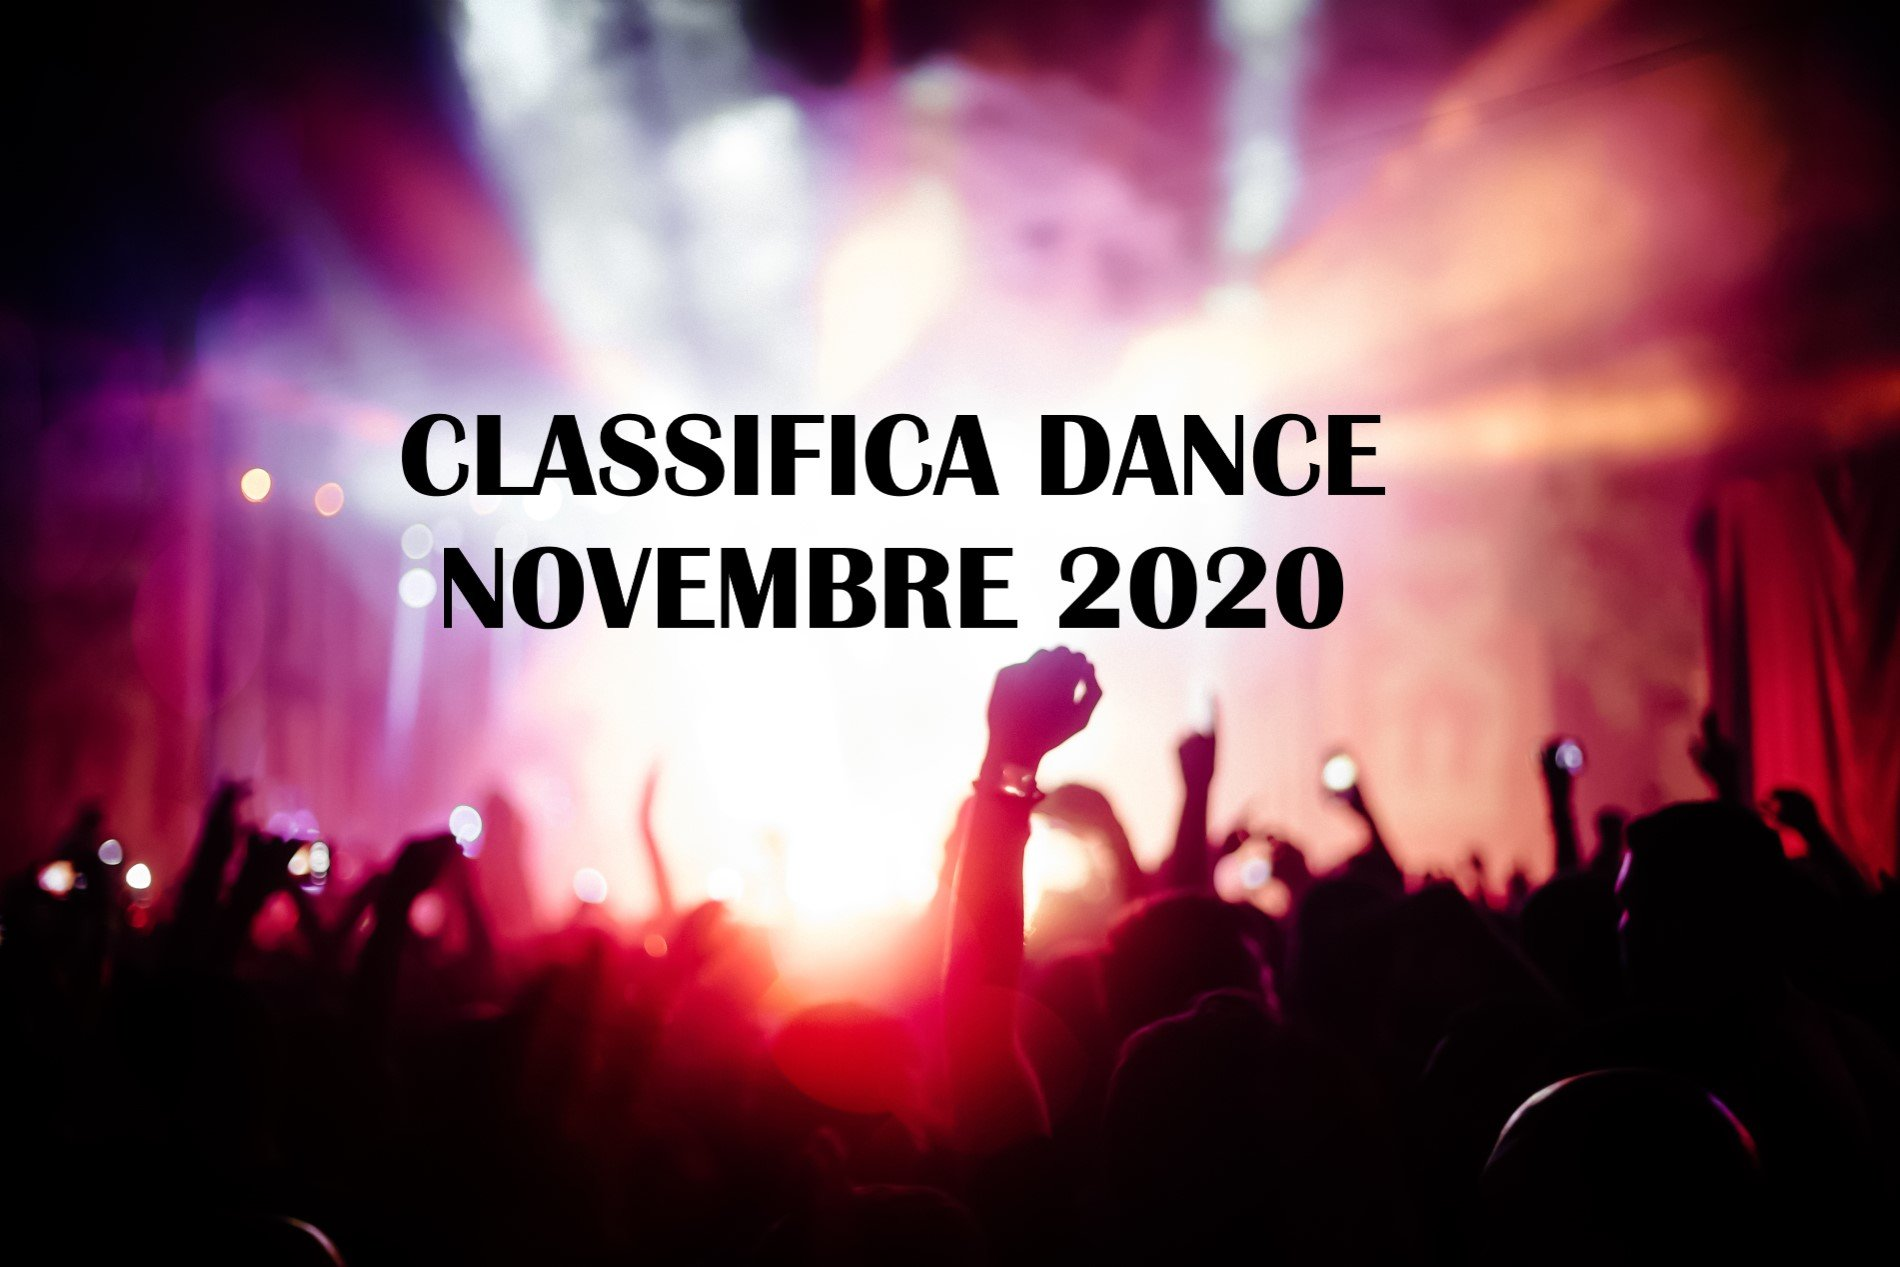 CLASSIFICA DANCE NOVEMBRE 2020 LA MIGLIORE MUSICA DANCE NOVEMBRE 2020